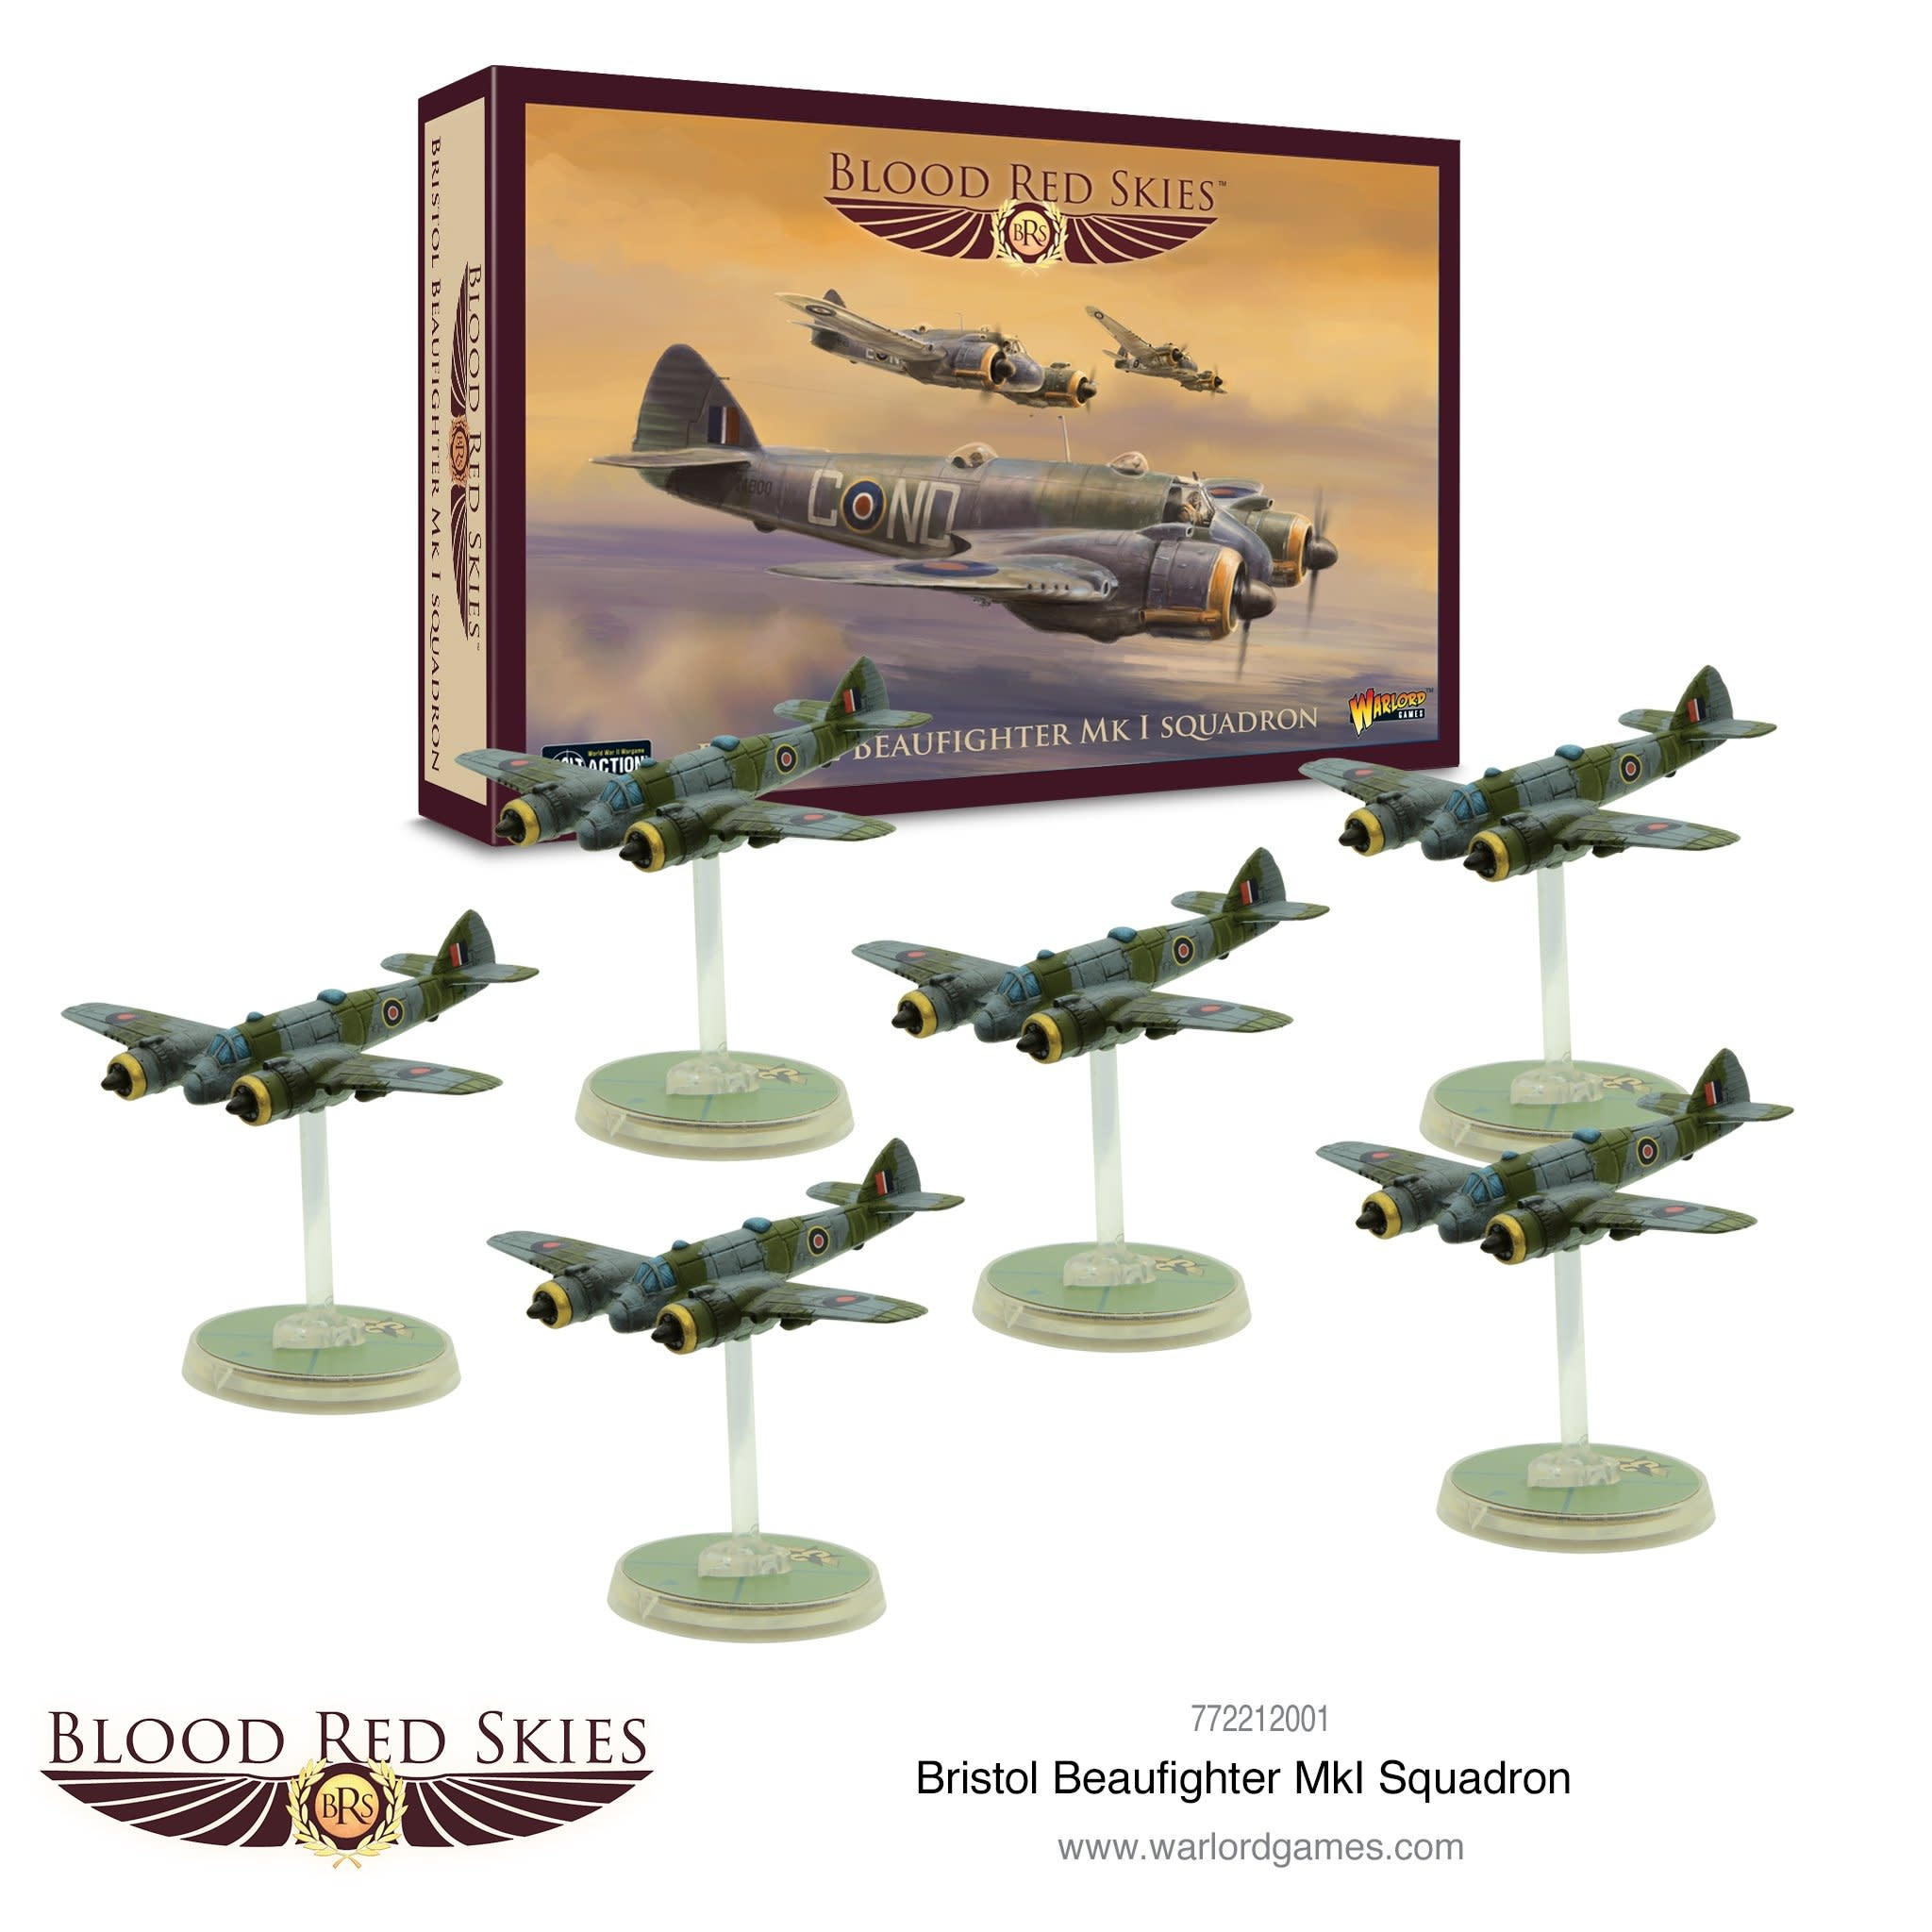 Warlord games Blood Red Skies: Bristol Beaufigher Mk I Squadron